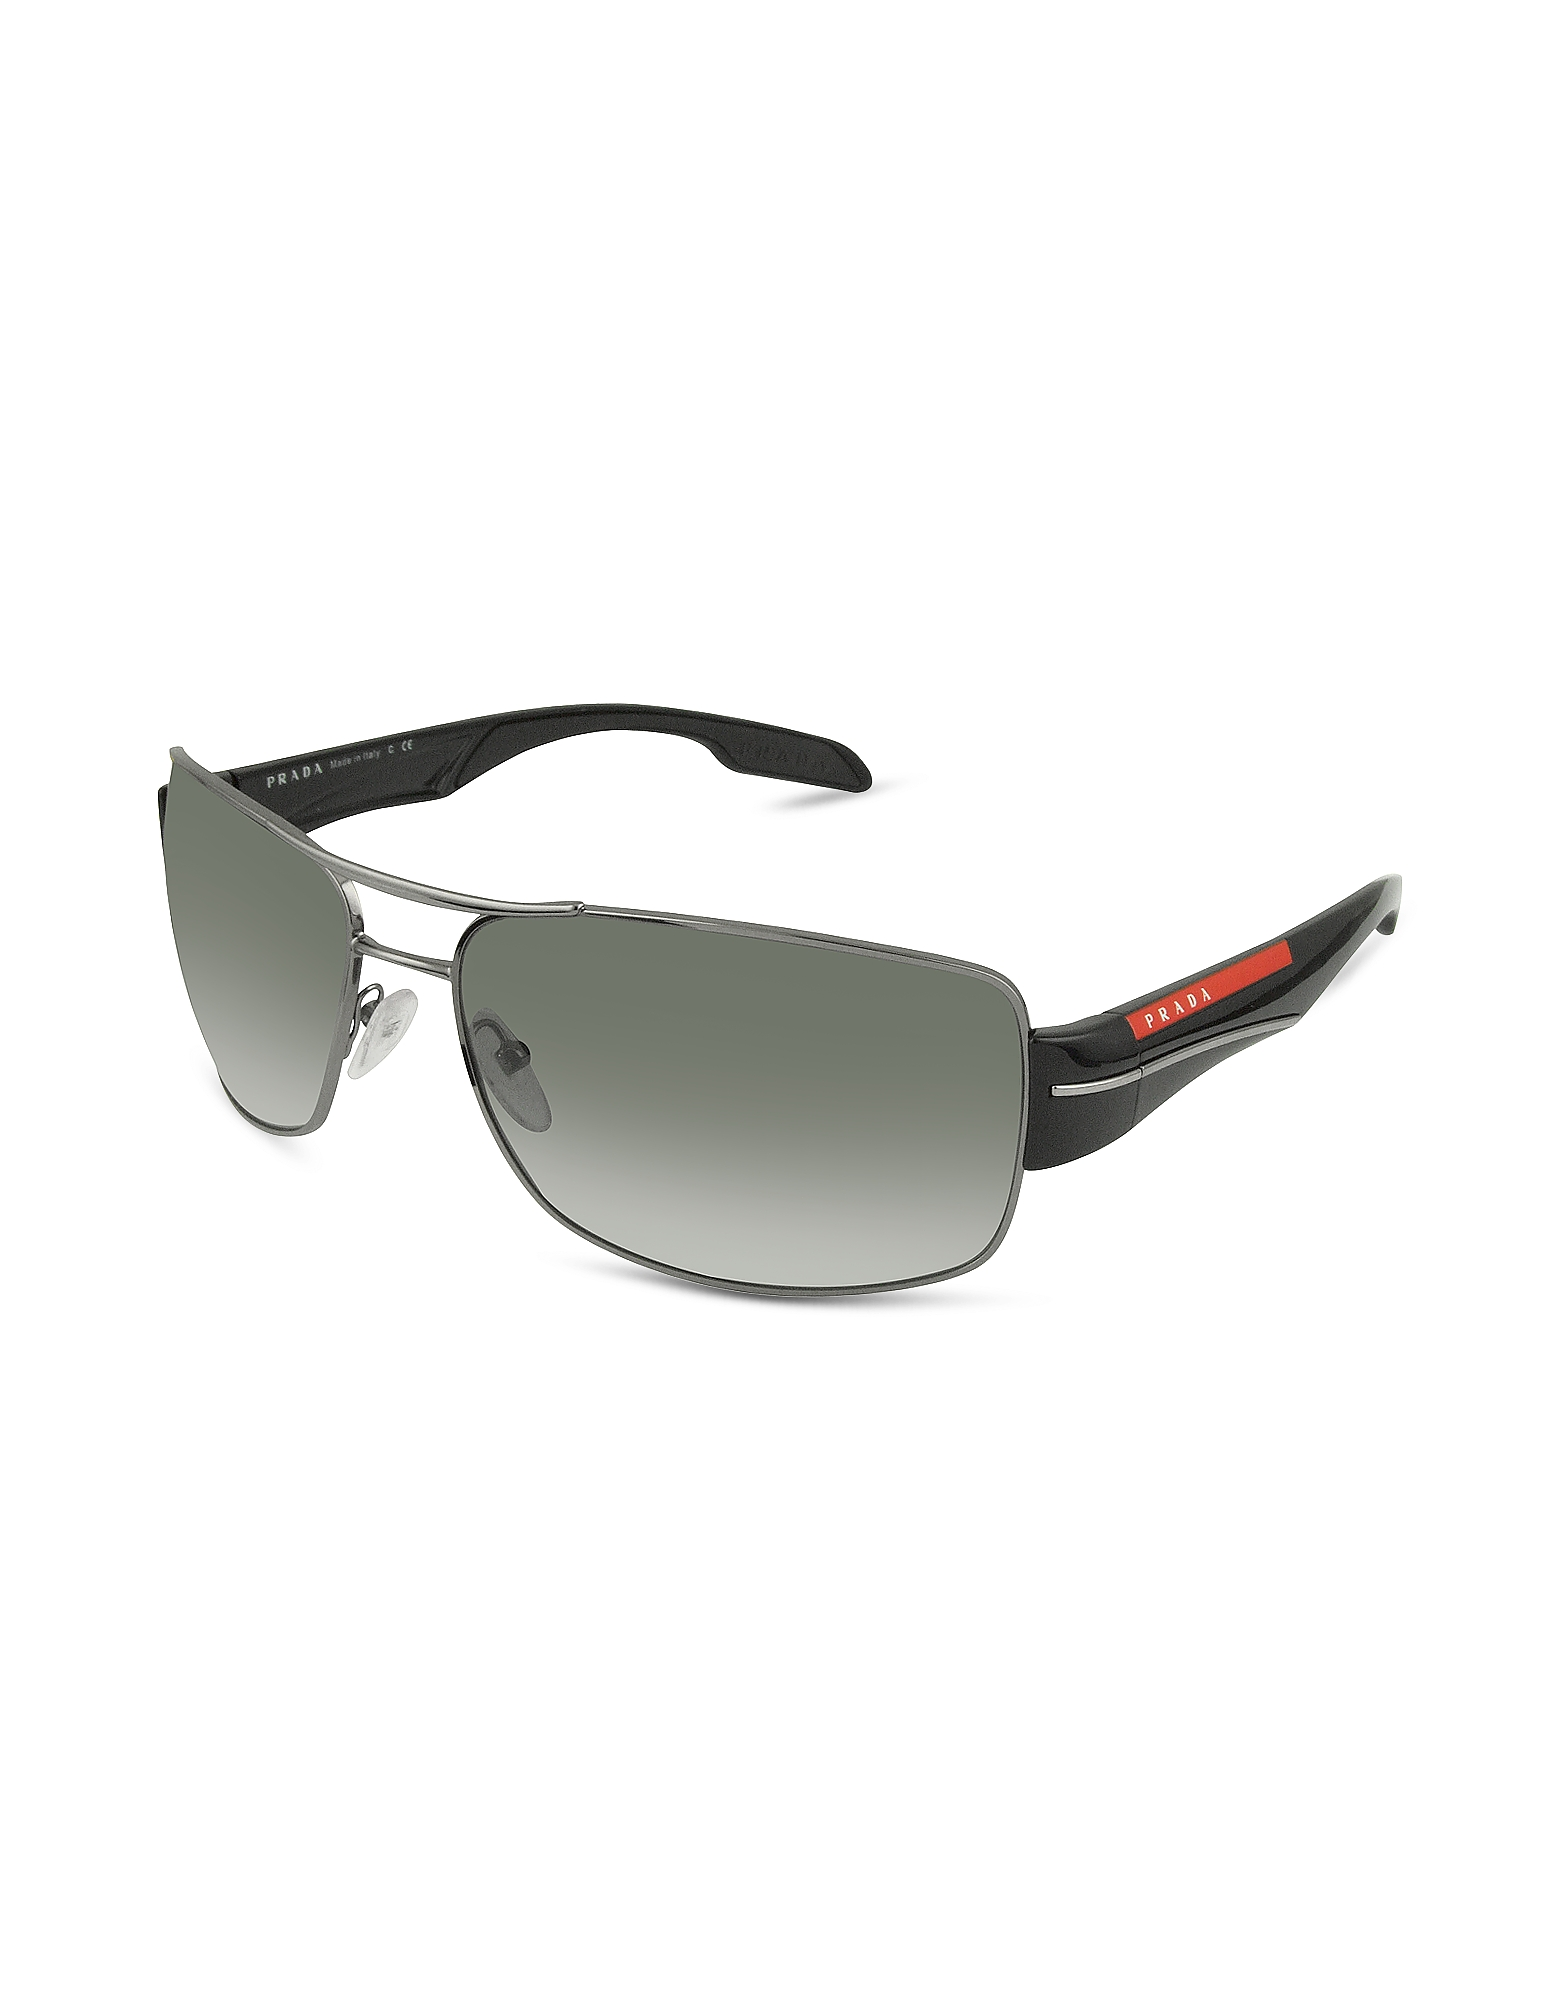 Prada Designer Sunglasses, Rectangle Metal Frame Sunglasses